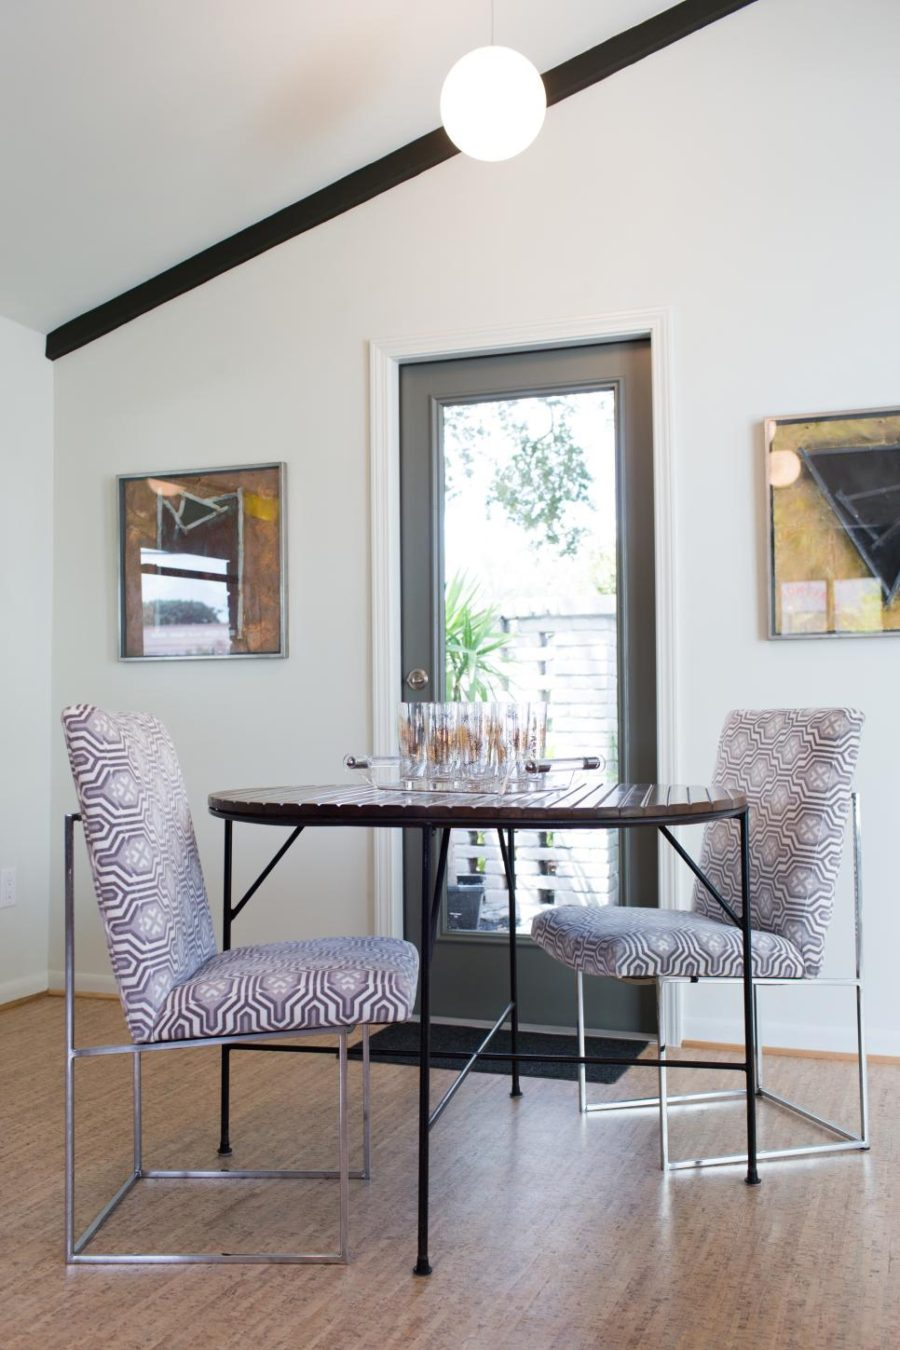 Jamie House remodel with a breakfast nook